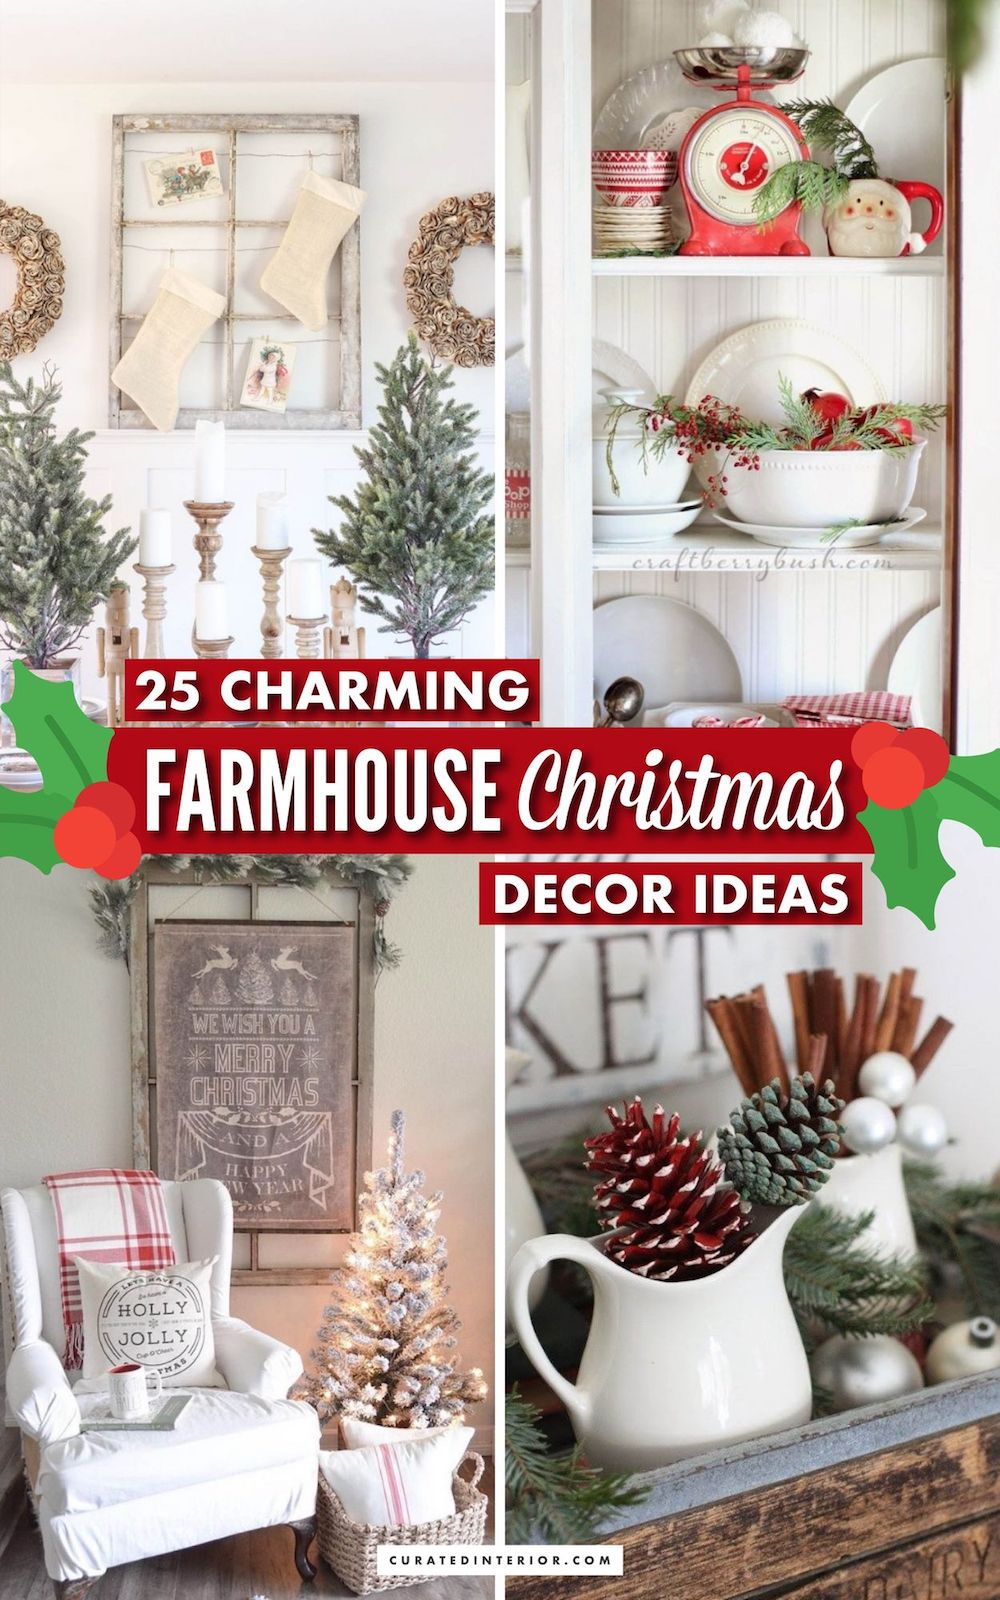 25 Charming Farmhouse Christmas Decor Ideas #FarmhouseChristmas #FarmhouseDecor